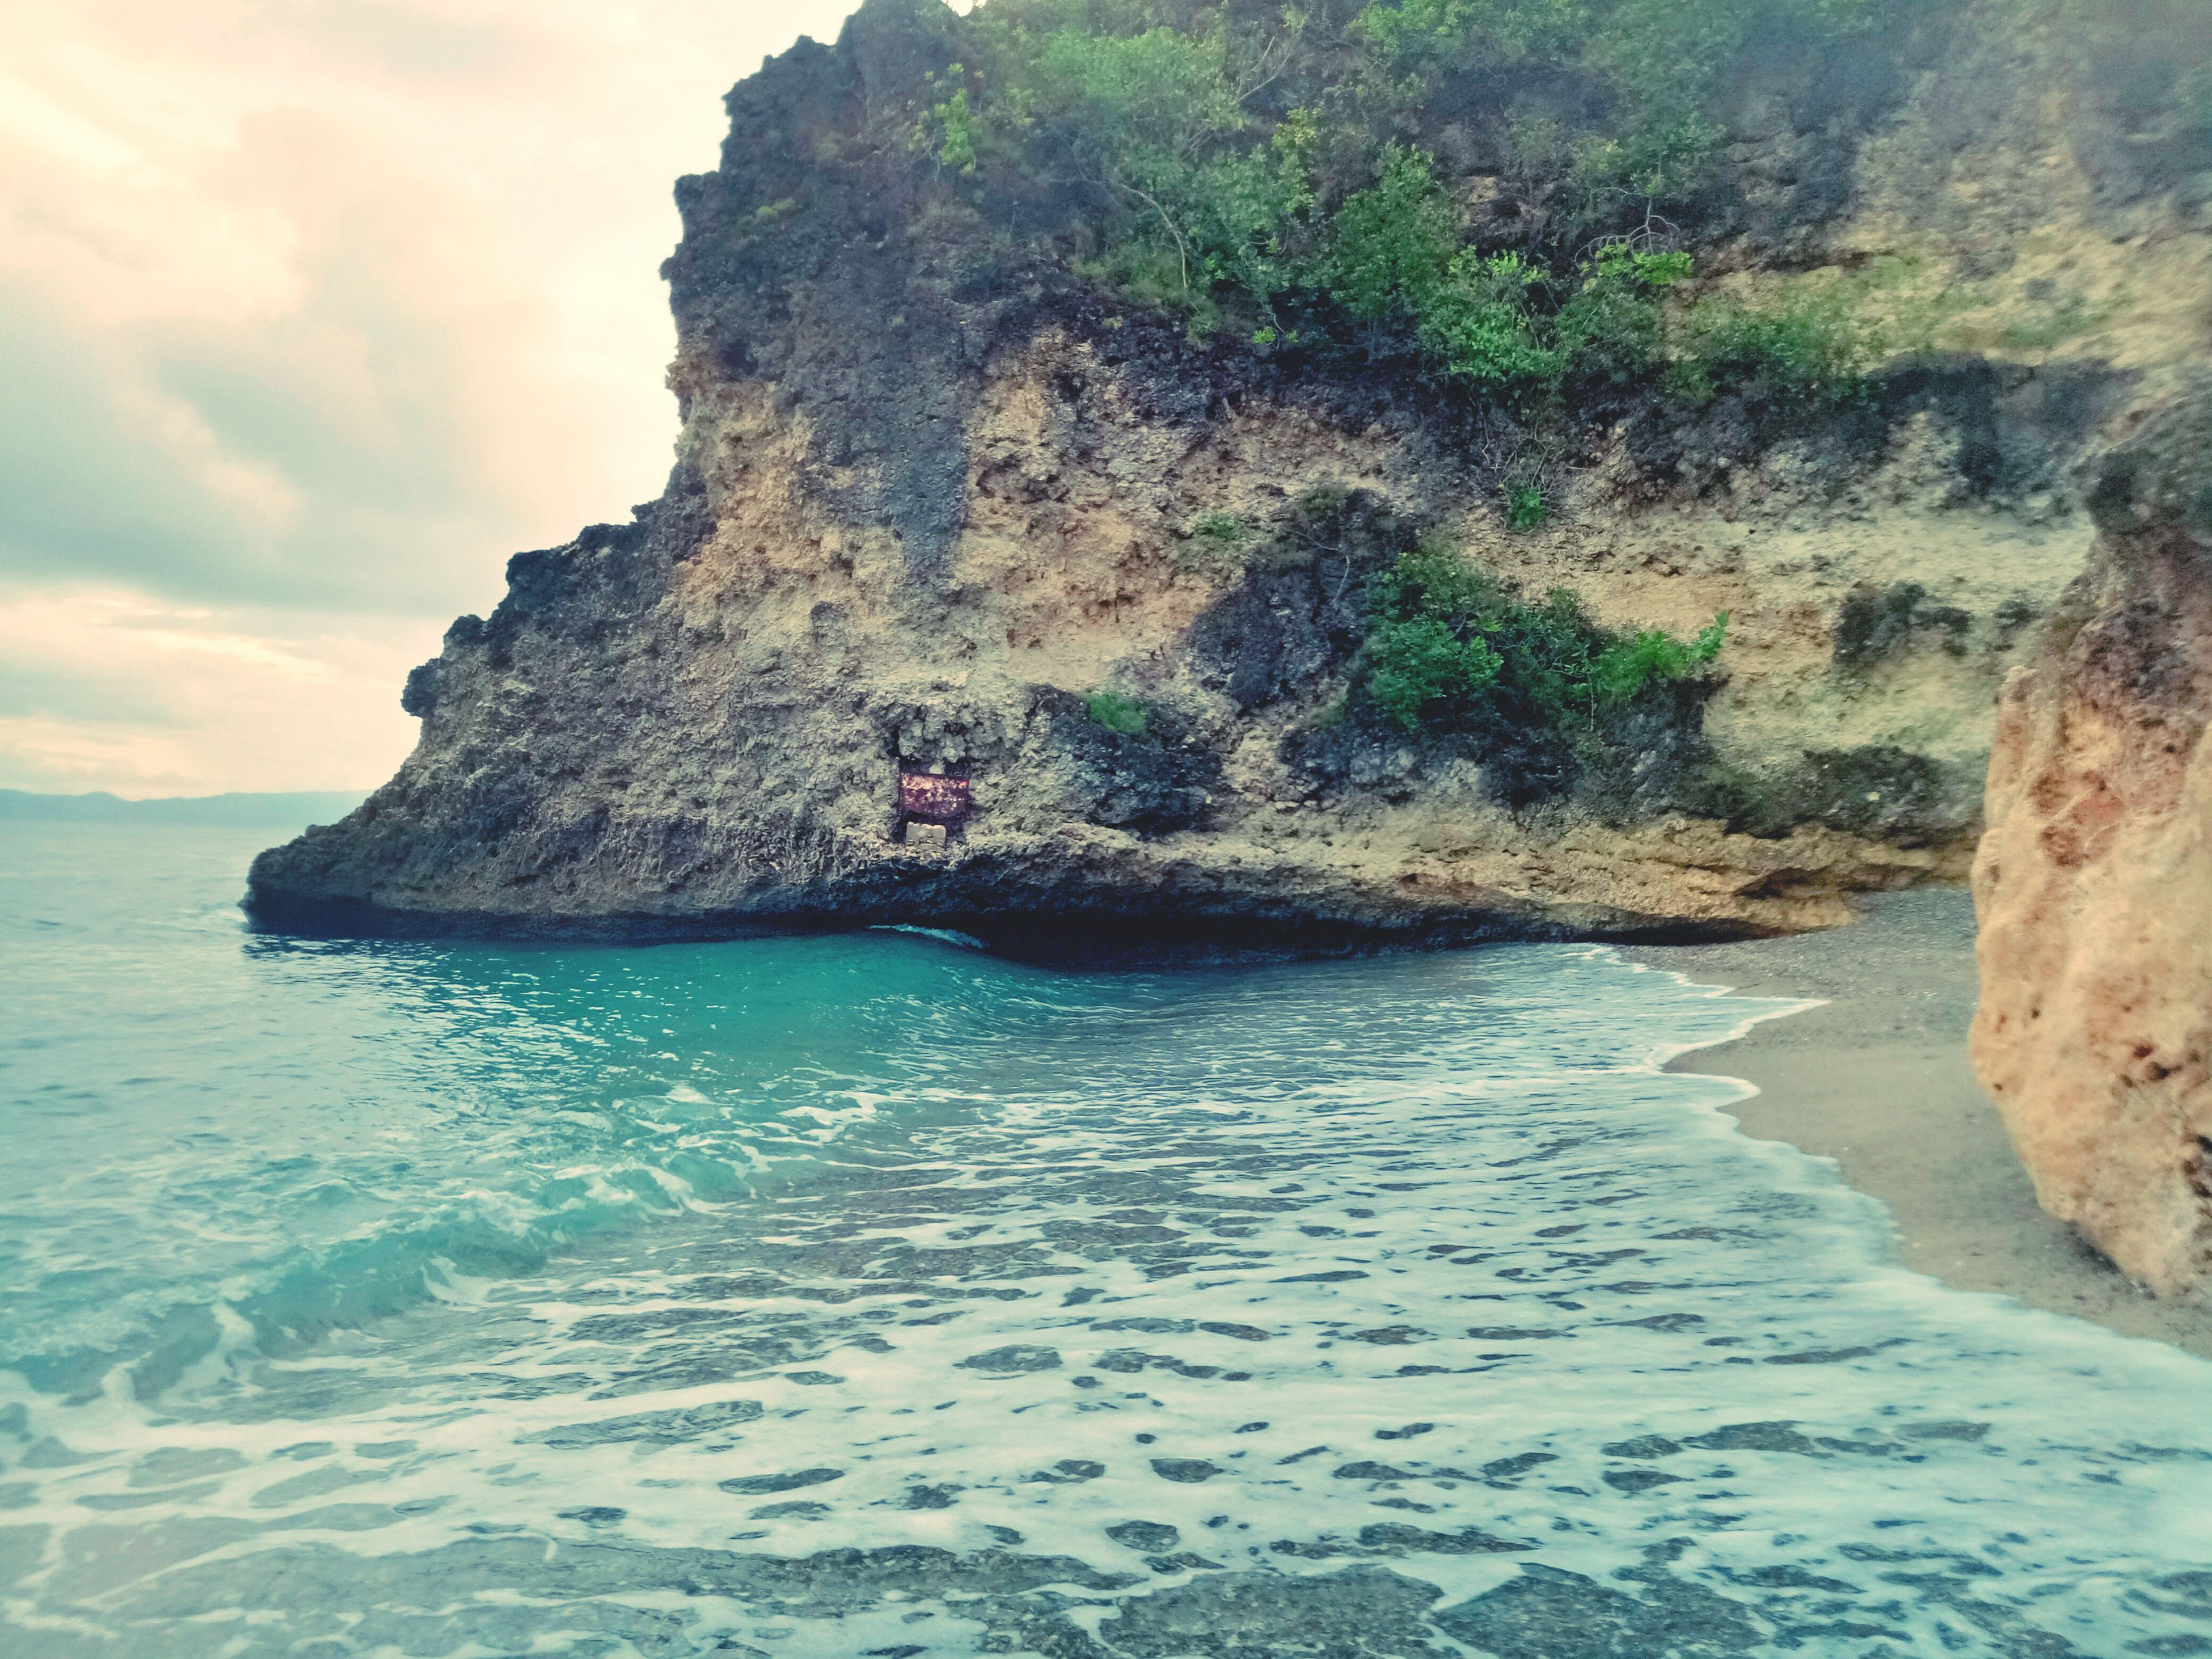 sea, nature, water, beauty in nature, rock formation, rock - object, scenics, tranquility, tranquil scene, no people, sky, outdoors, cliff, day, beach, horizon over water